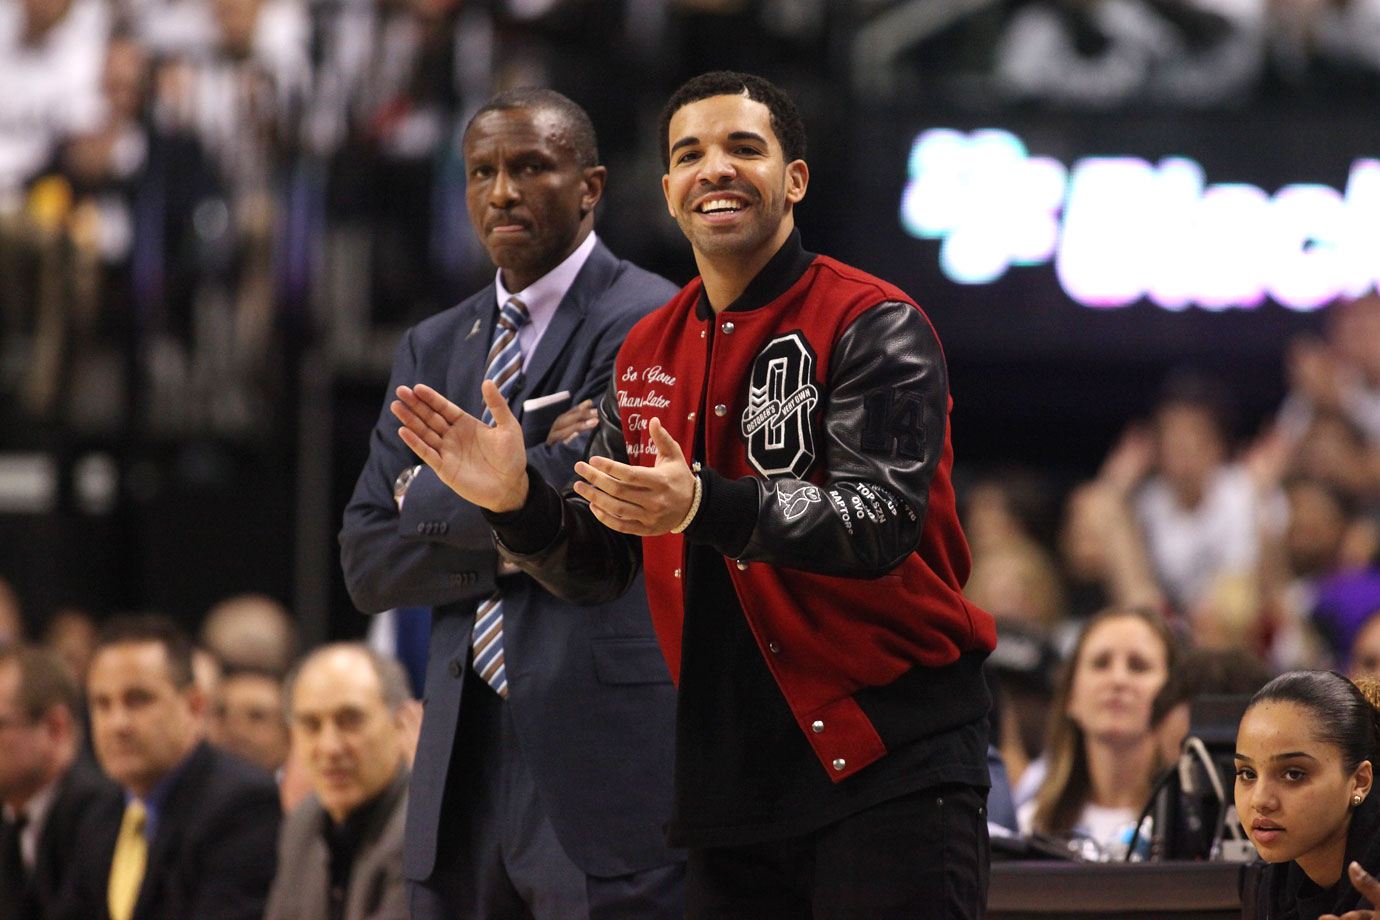 Toronto Raptors vs. Brooklyn Nets in Game 5 of the Eastern Conference Quarterfinals at Air Canada Centre in Toronto